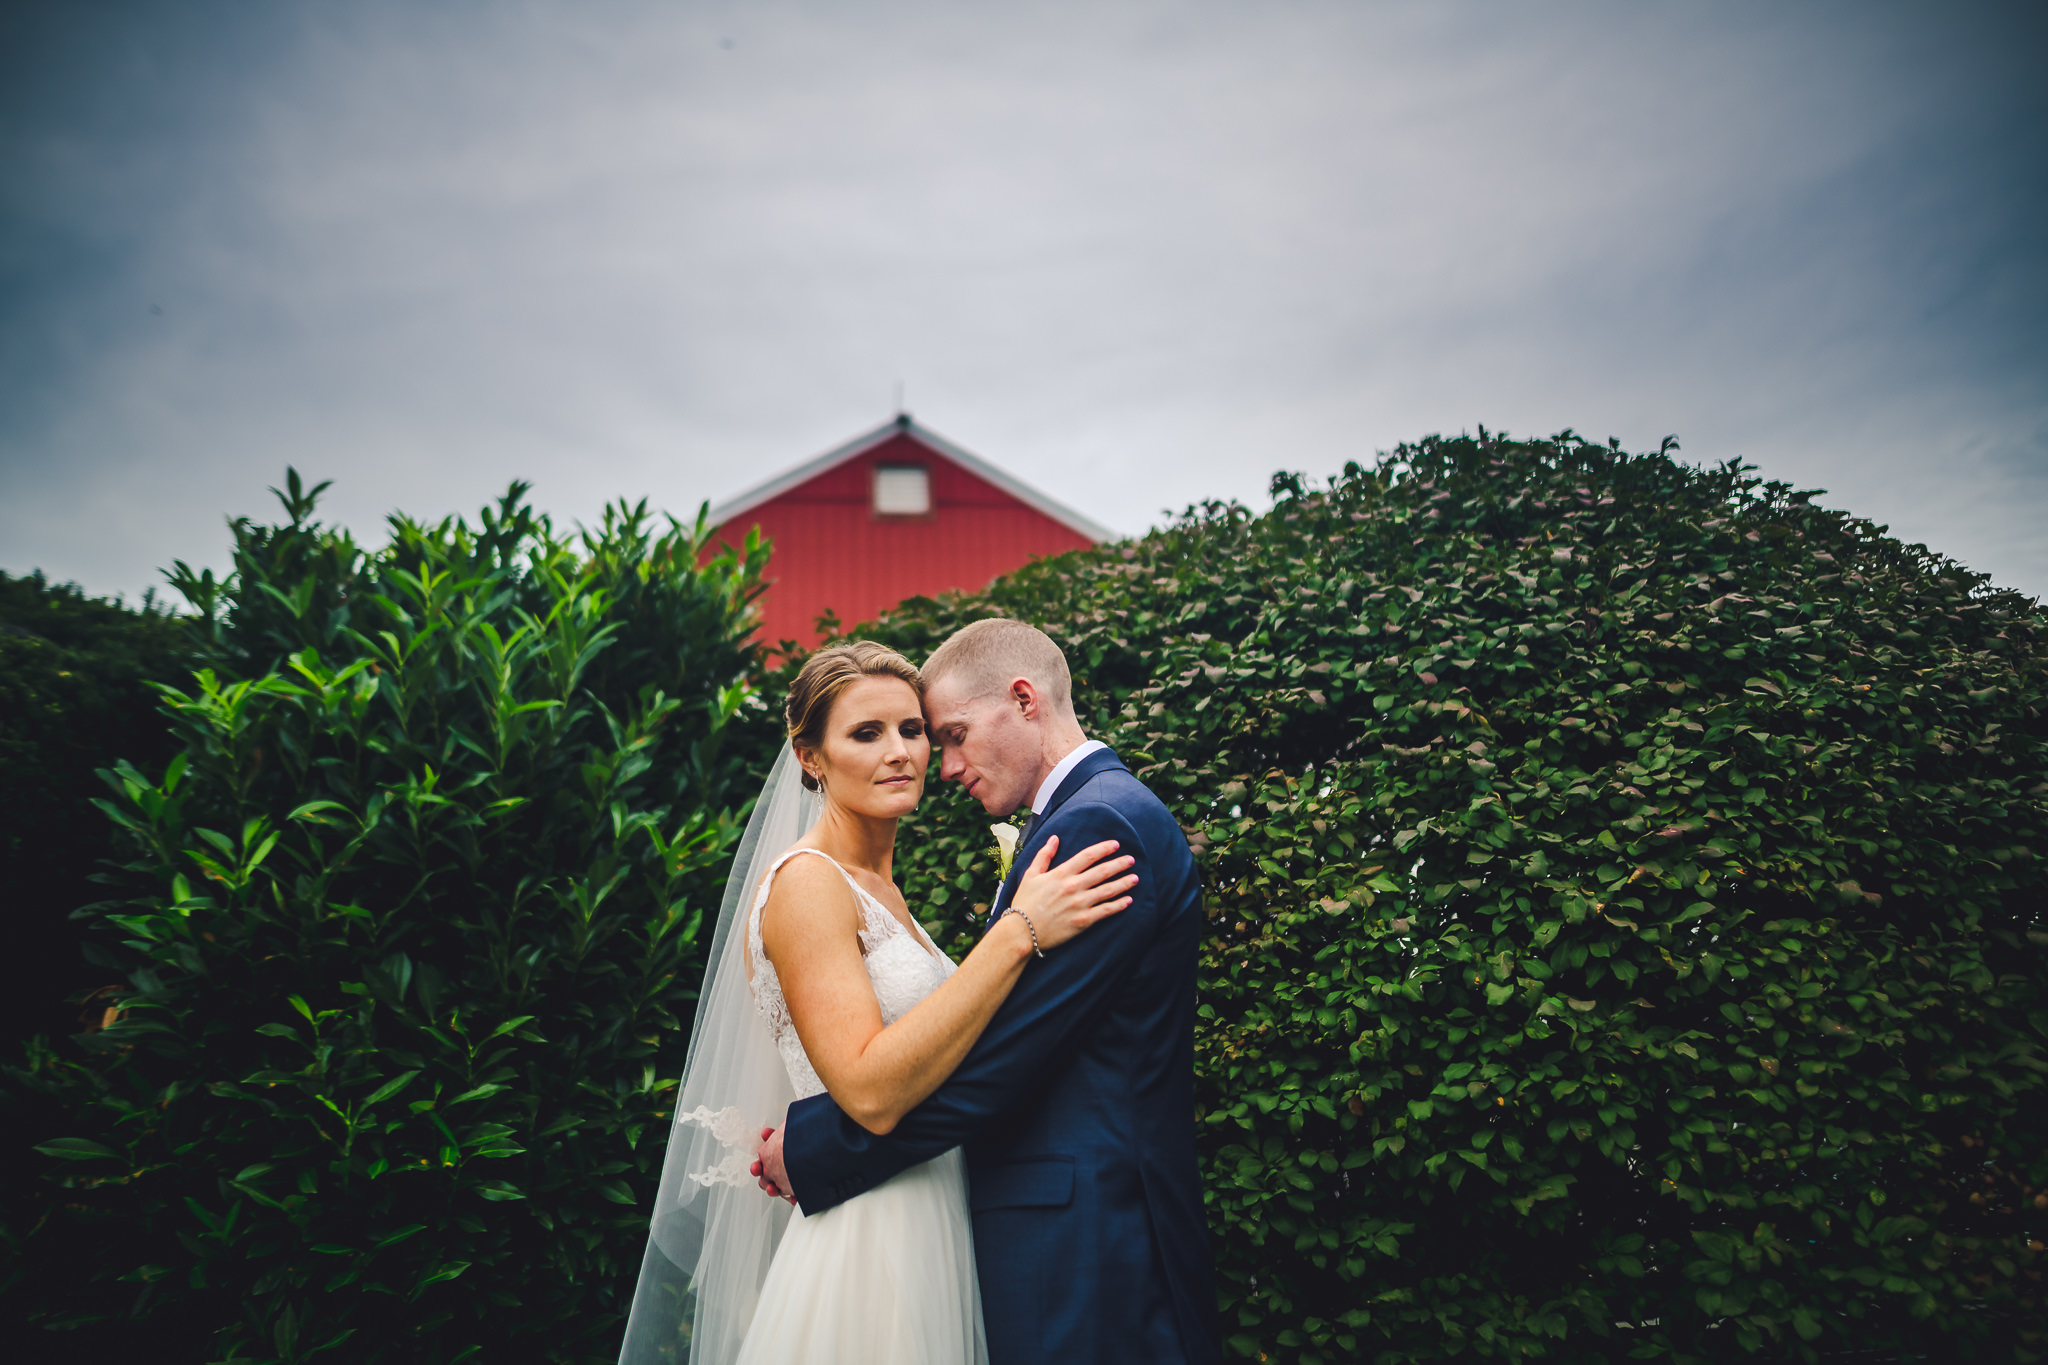 Barn-On-Bridge-Wedding-Photographers-in-Philadelphia